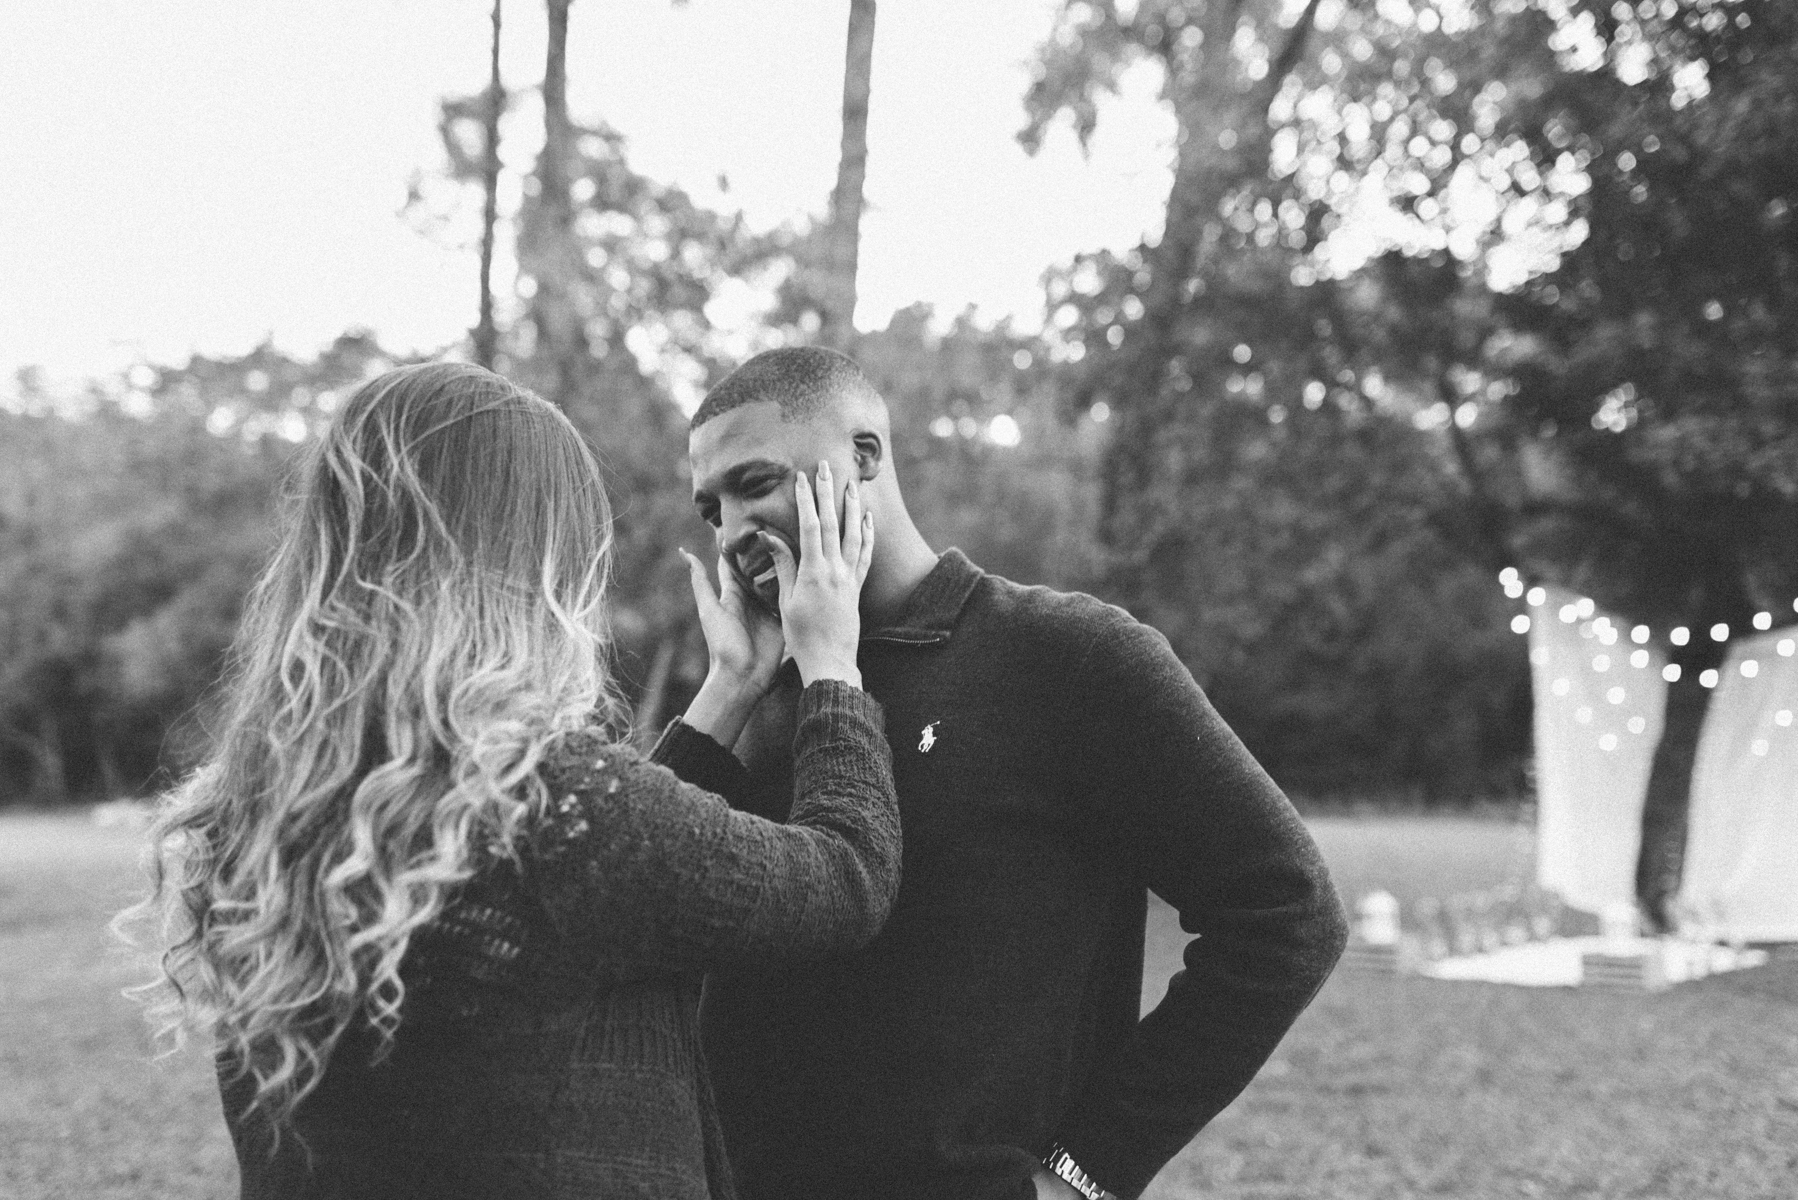 atlanta-engagement-photographer-atlanta-wedding-photographer-trent-david-kat-proposal-preview-29.jpg